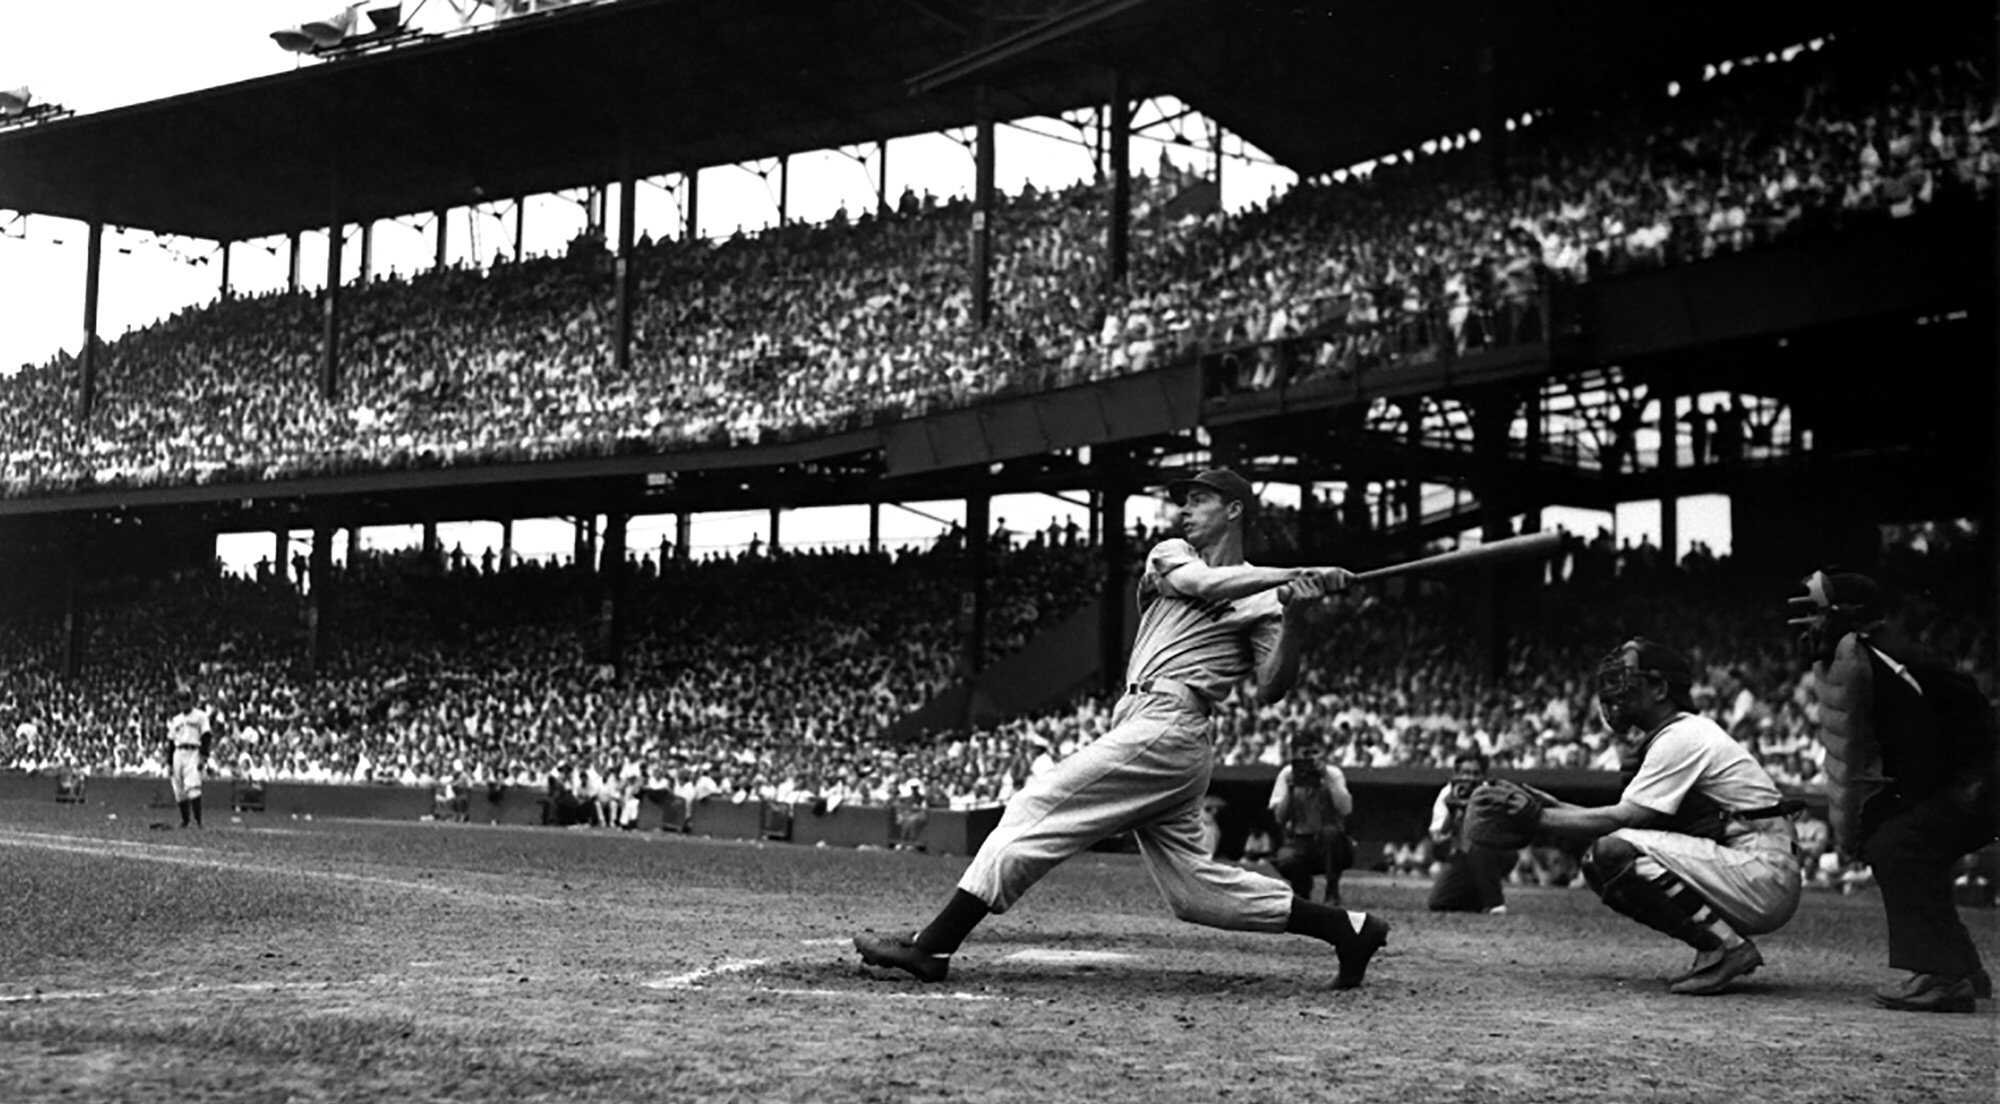 Dimaggio-Great-Player.jpg